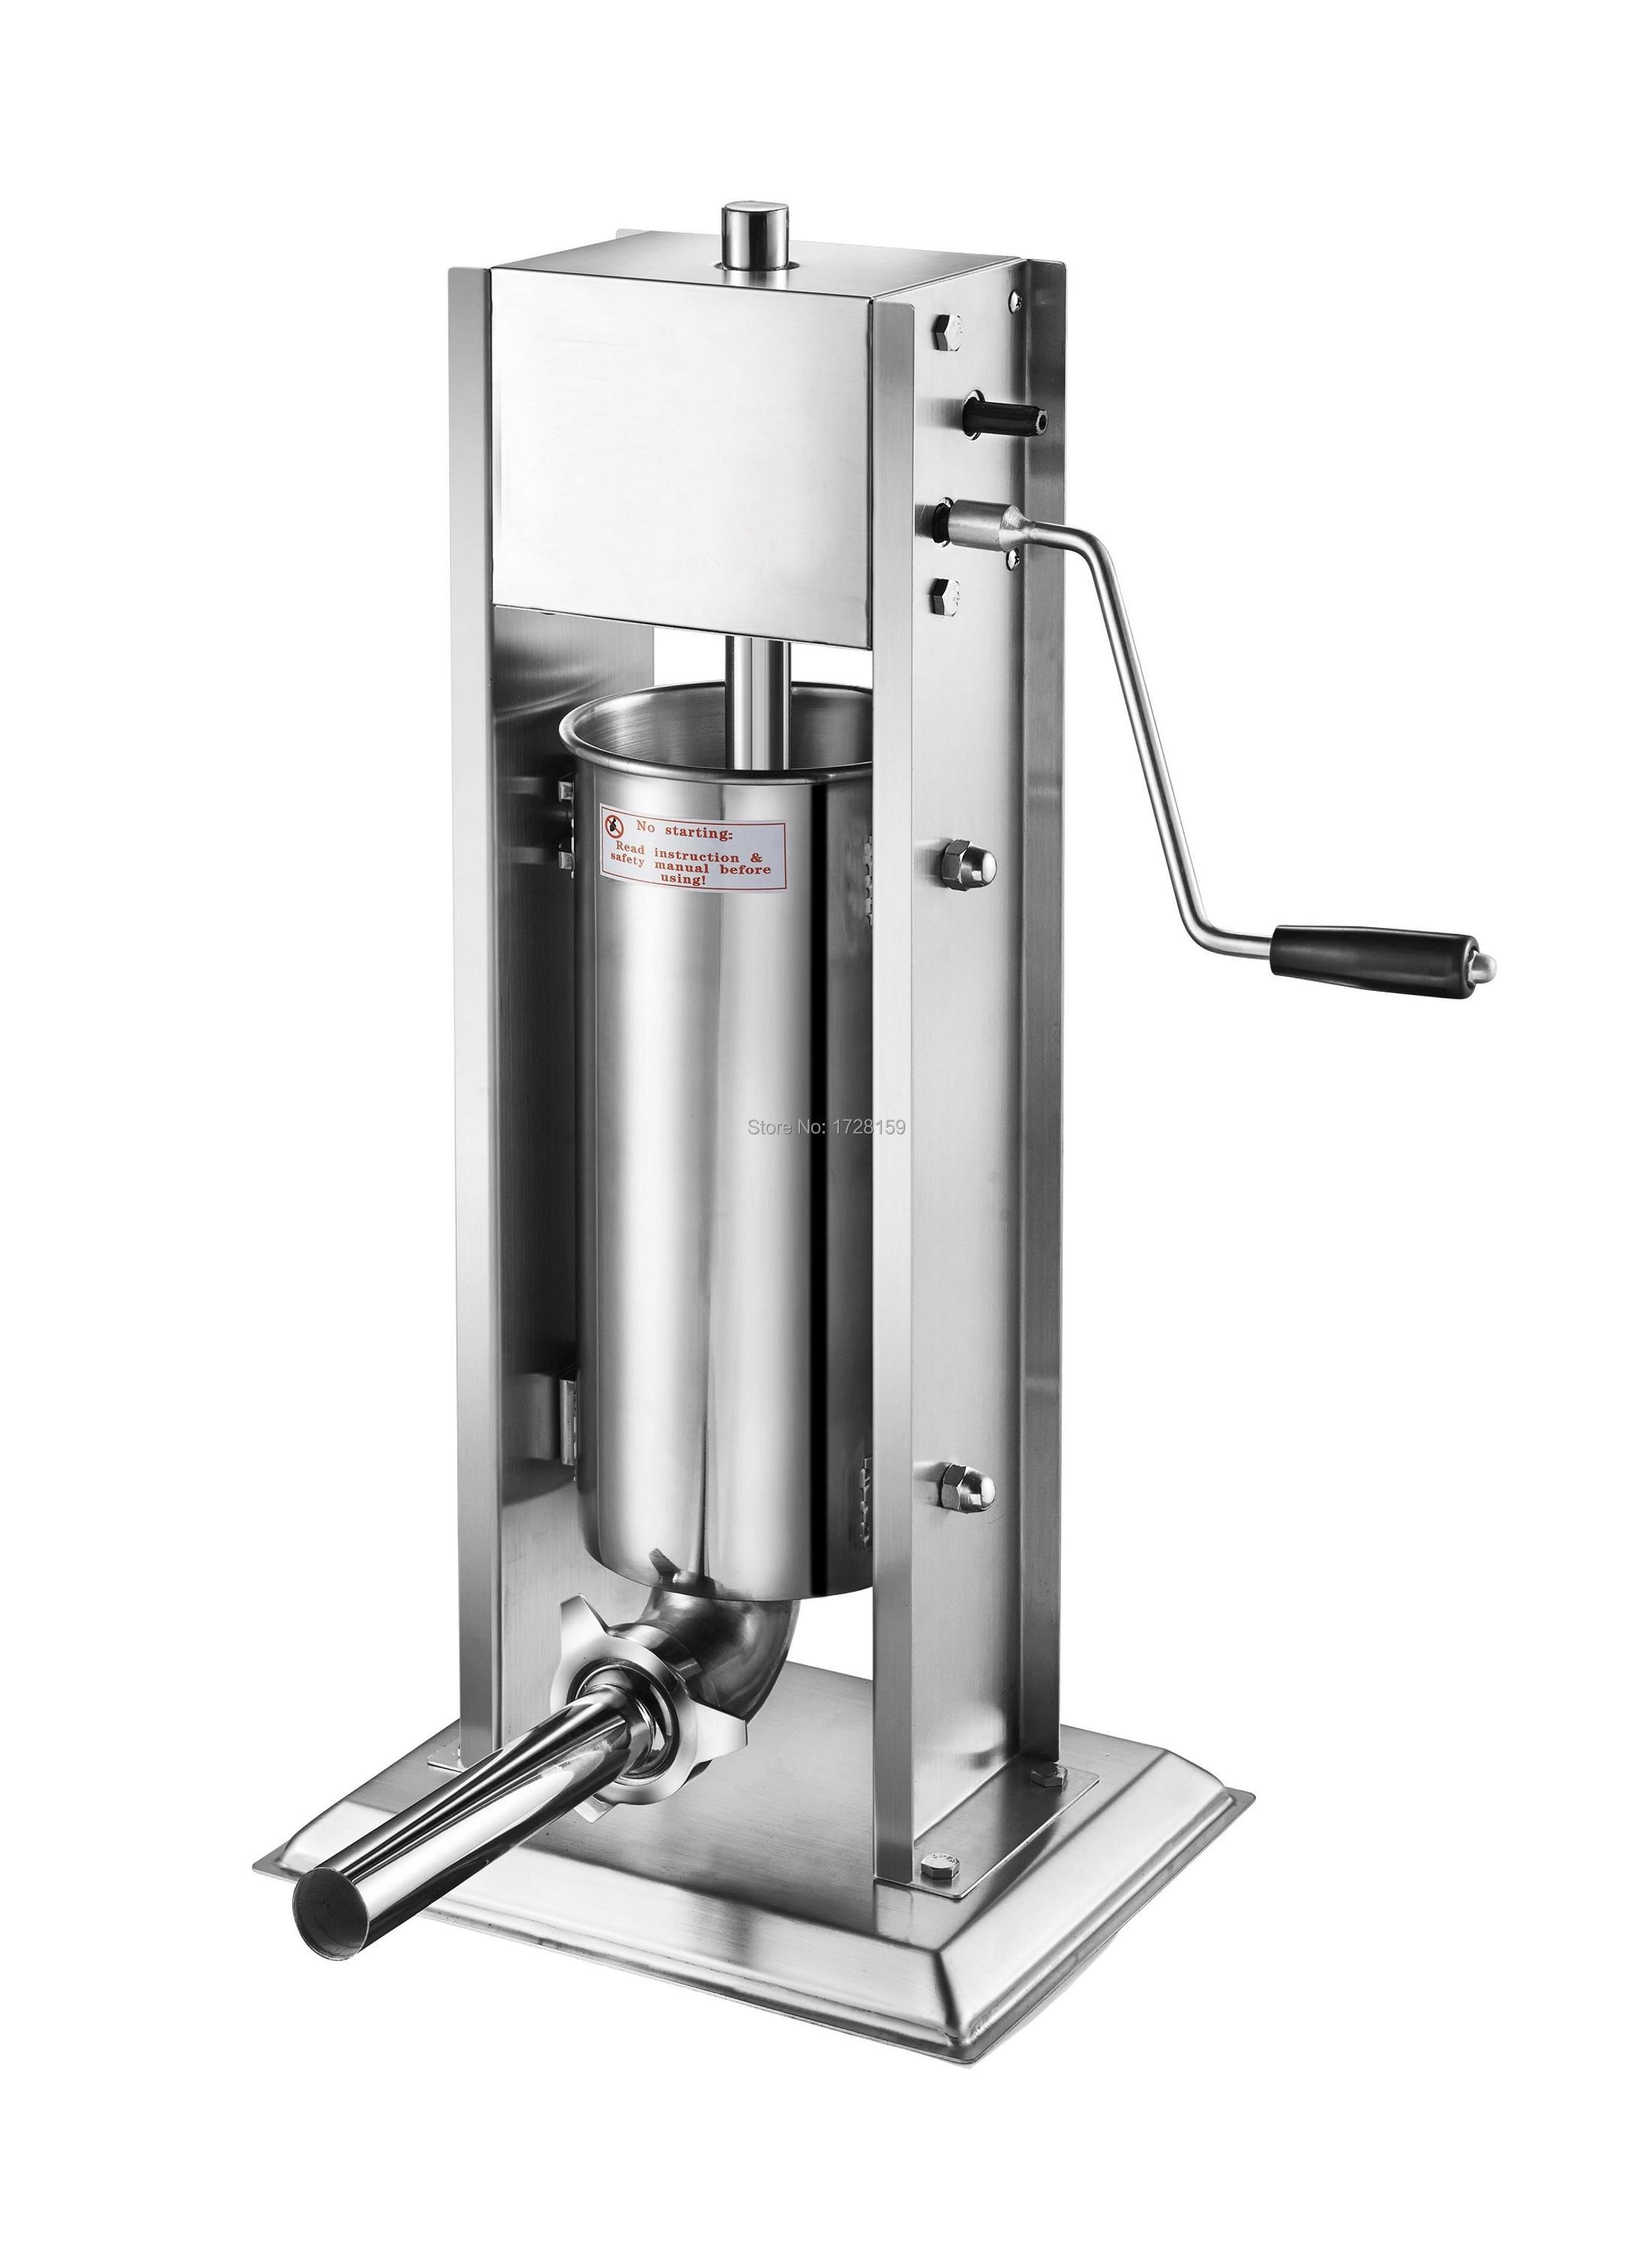 7l /15lb  Stainless Steel Sausage Maker Manual Sausage Stuffer Machine Making Filling Vertical Sausage Filler Meat Processor